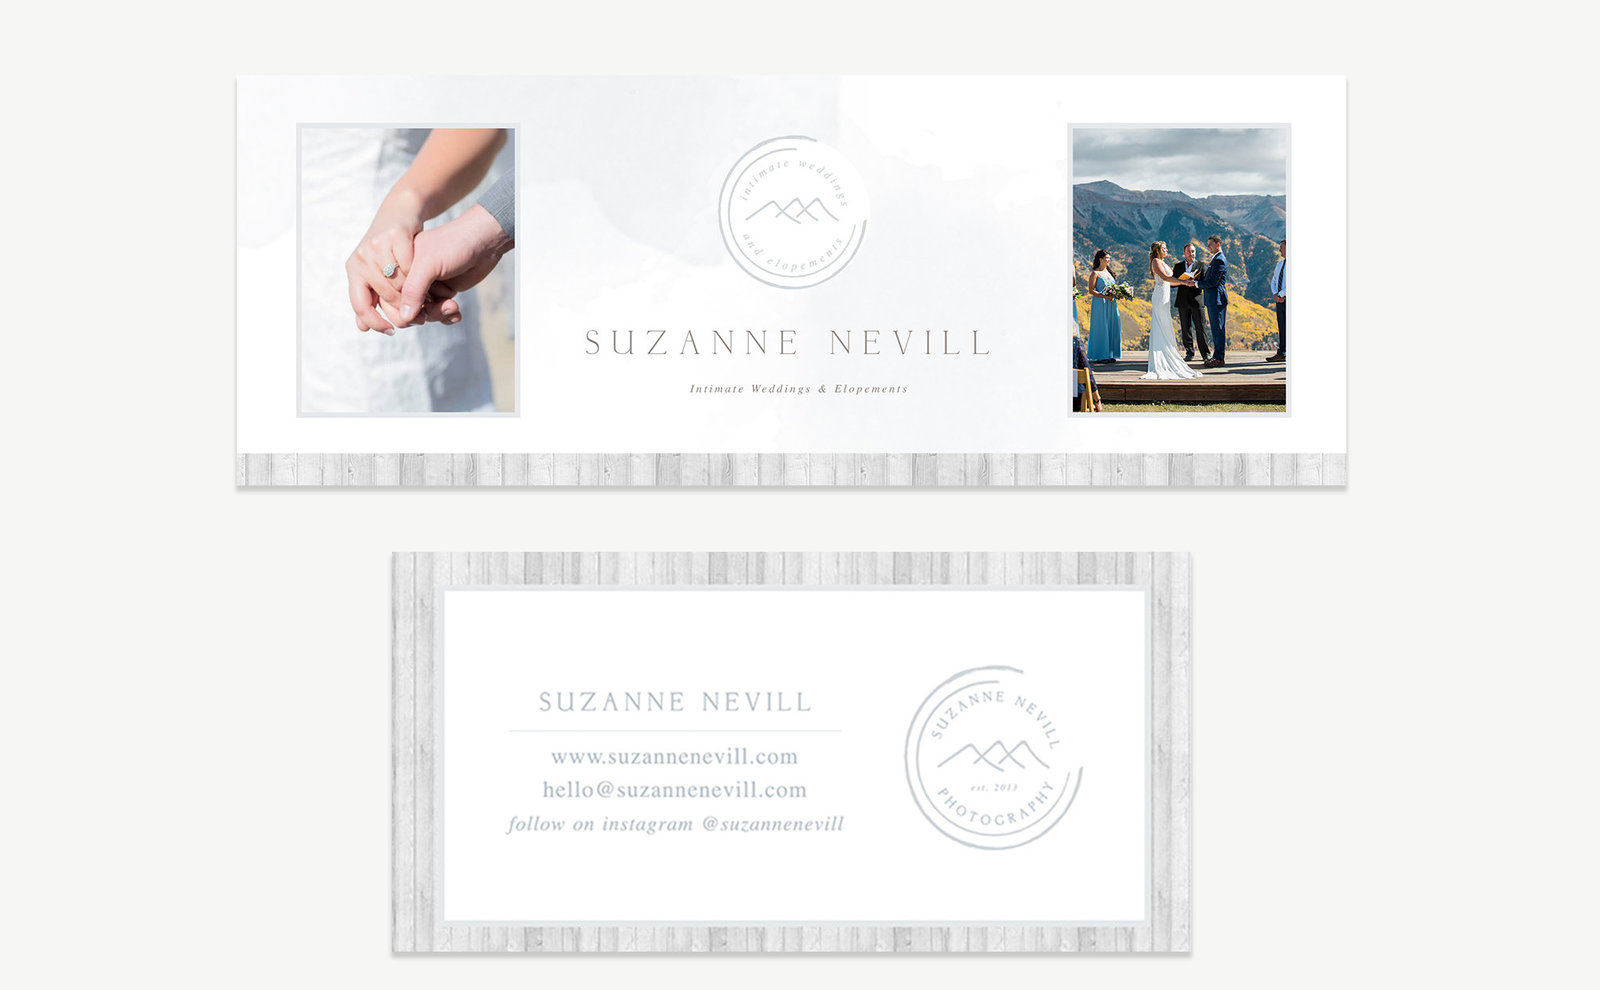 wedding-photographer-brand-design-brand-board-logo-design-showit5-website-flat-lay-full-branding-for-creatives-social-media